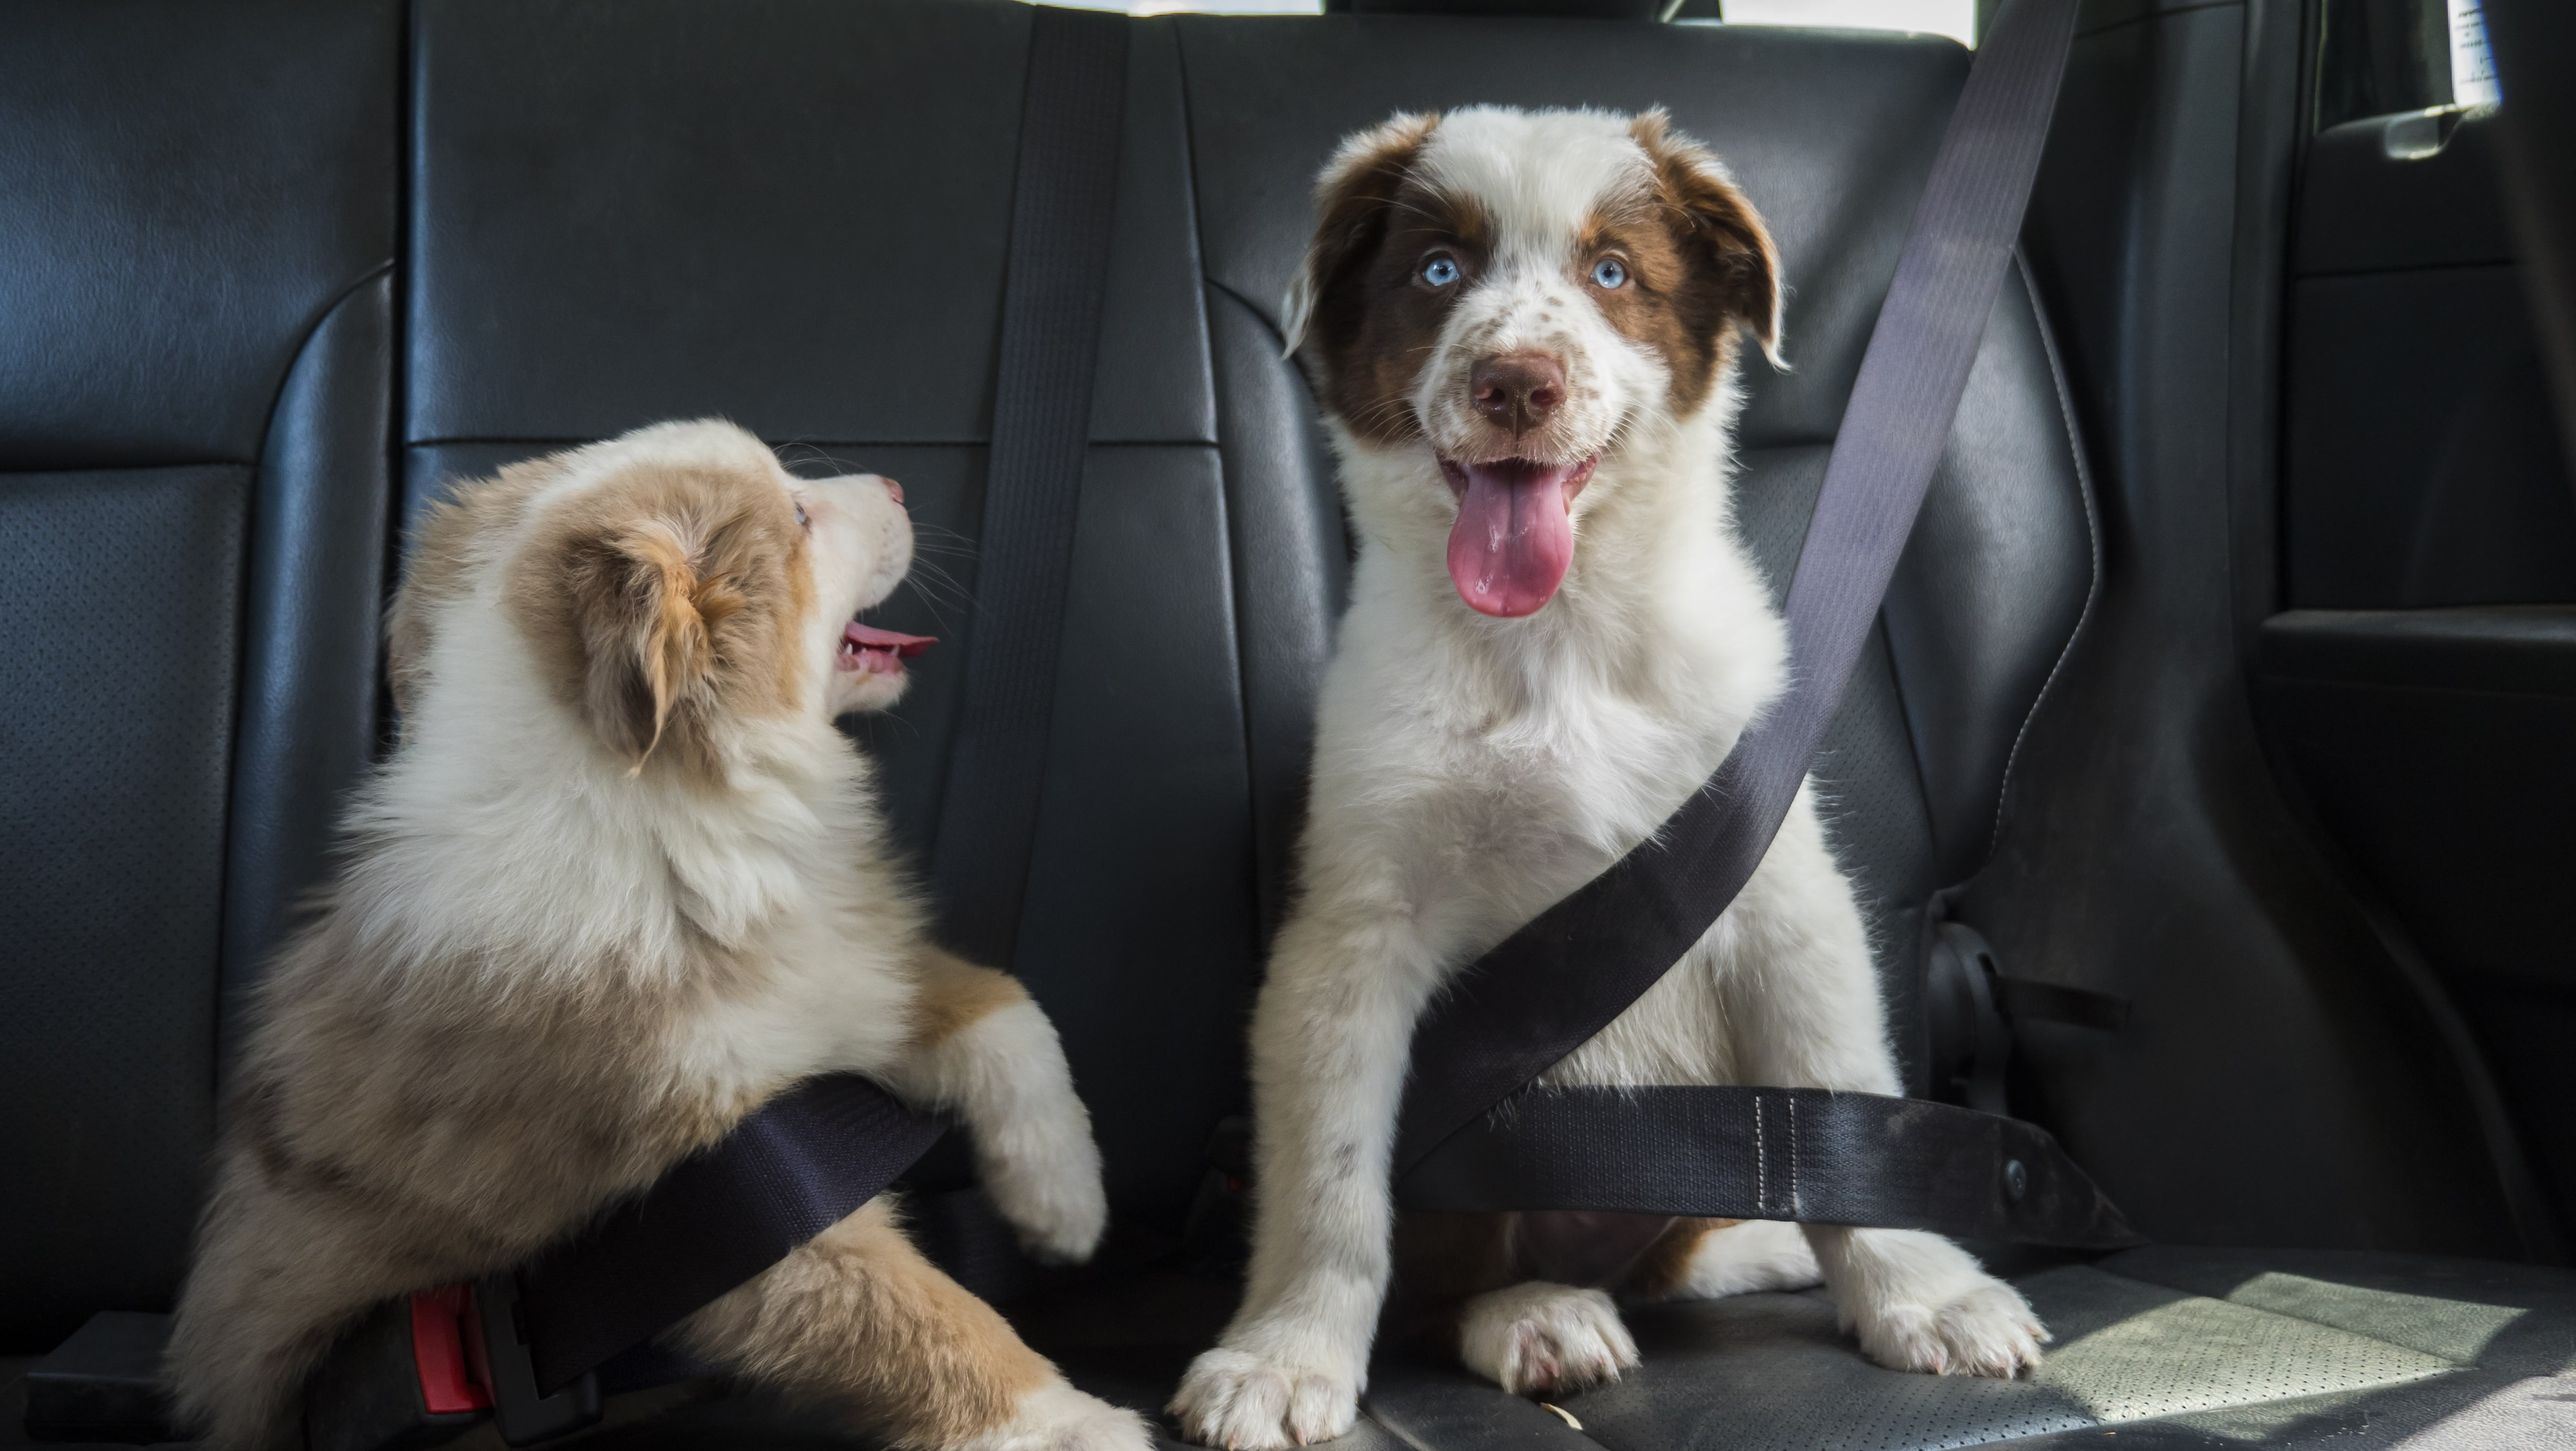 Riding With a Pet: 6 Ways to Keep Them Safe